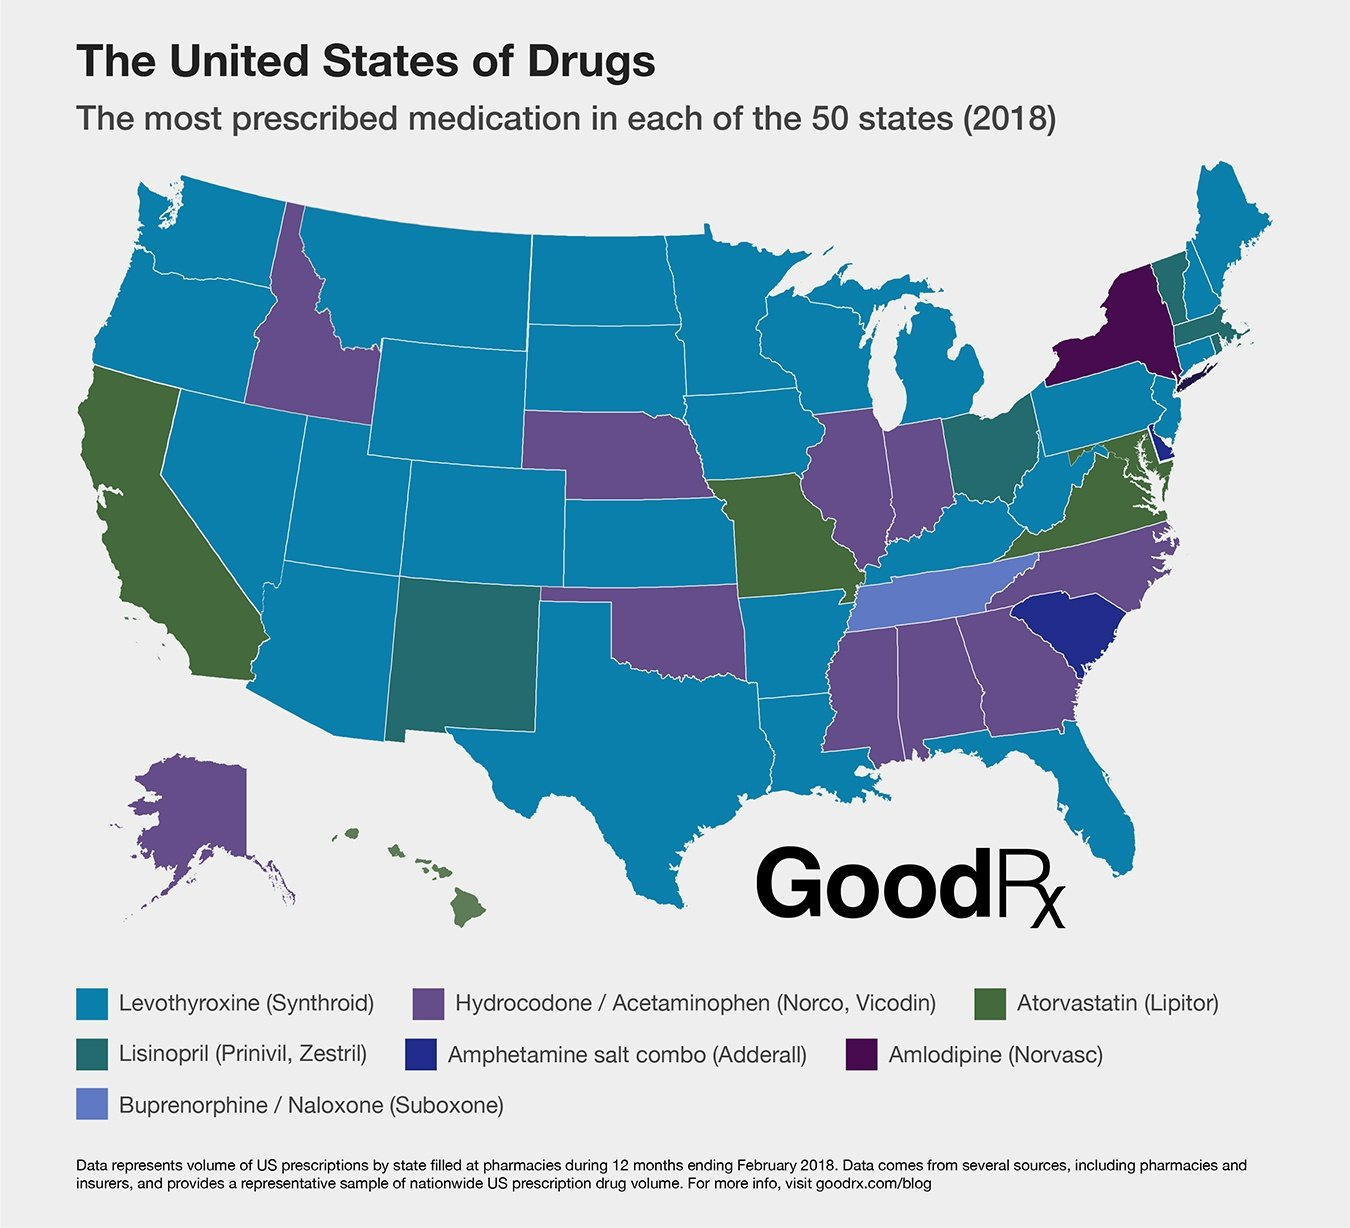 https://0201.nccdn.net/4_2/000/000/046/6ea/top_drugs_static_map-02-copy_1350-1350x1228.jpg